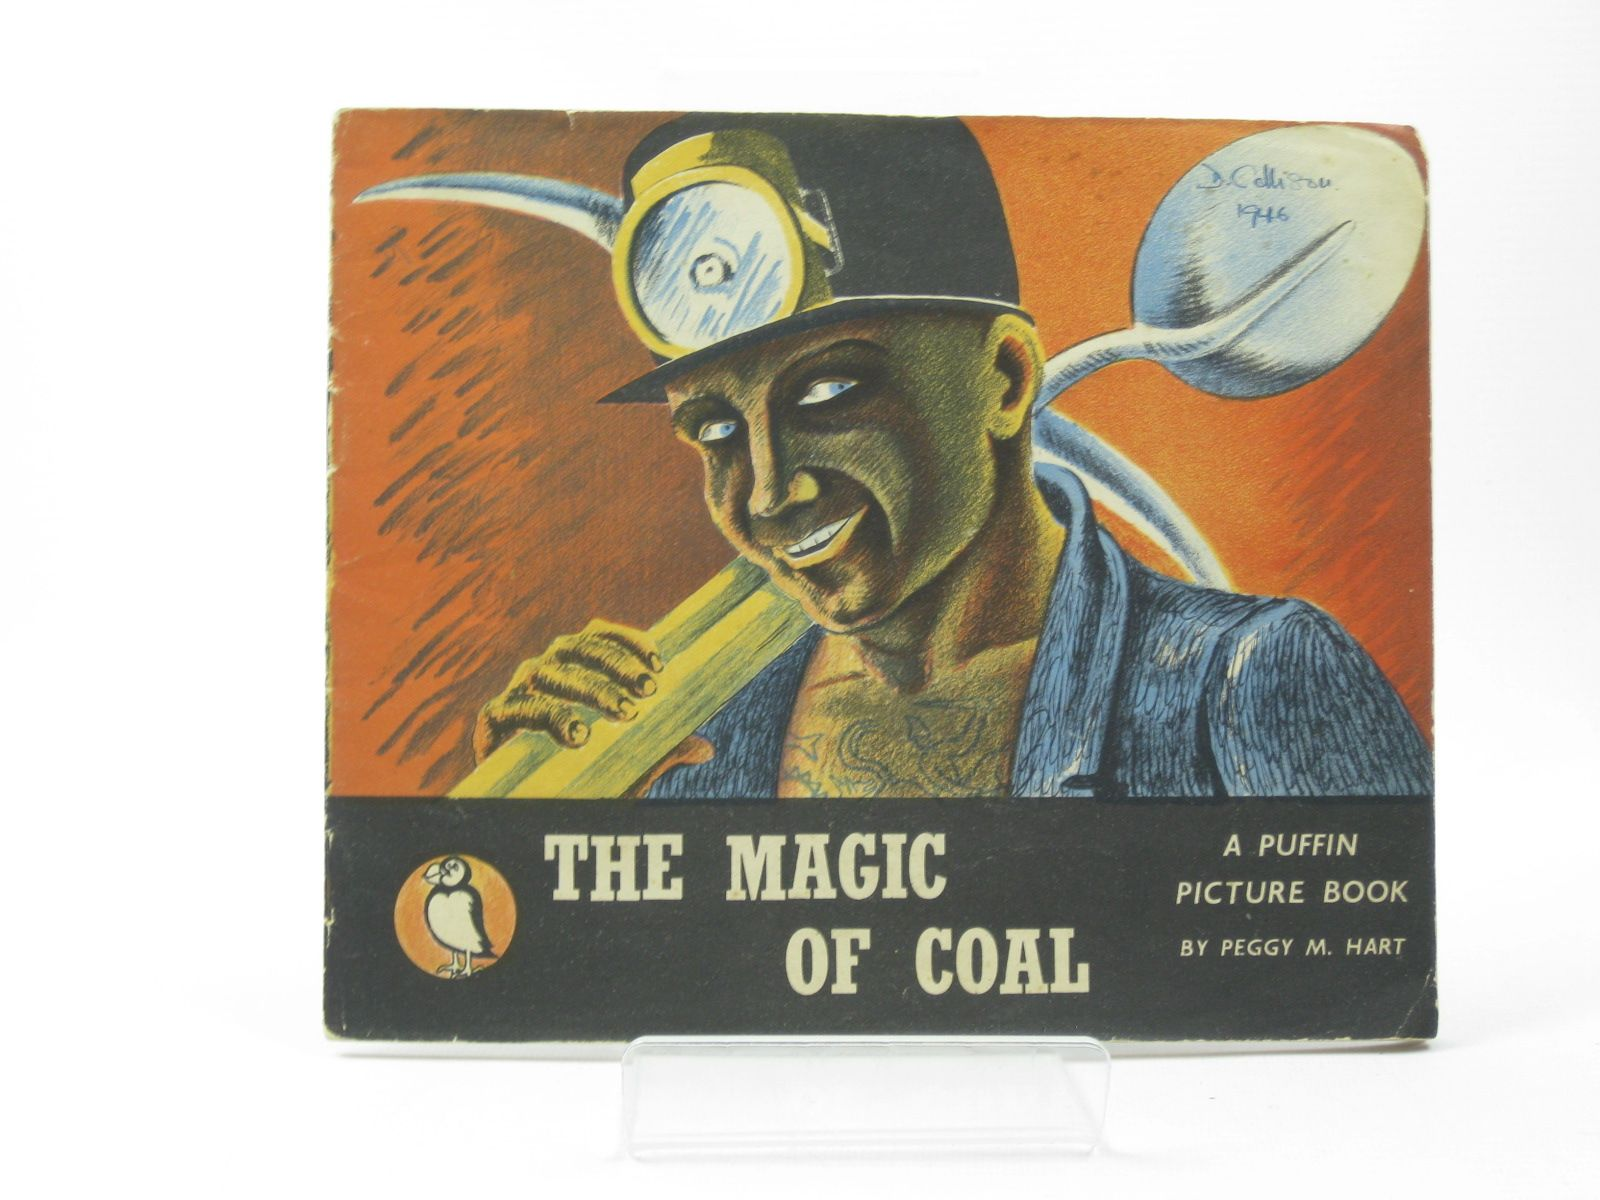 Puffin Picture Book The Magic of Coal by Peggy Hart